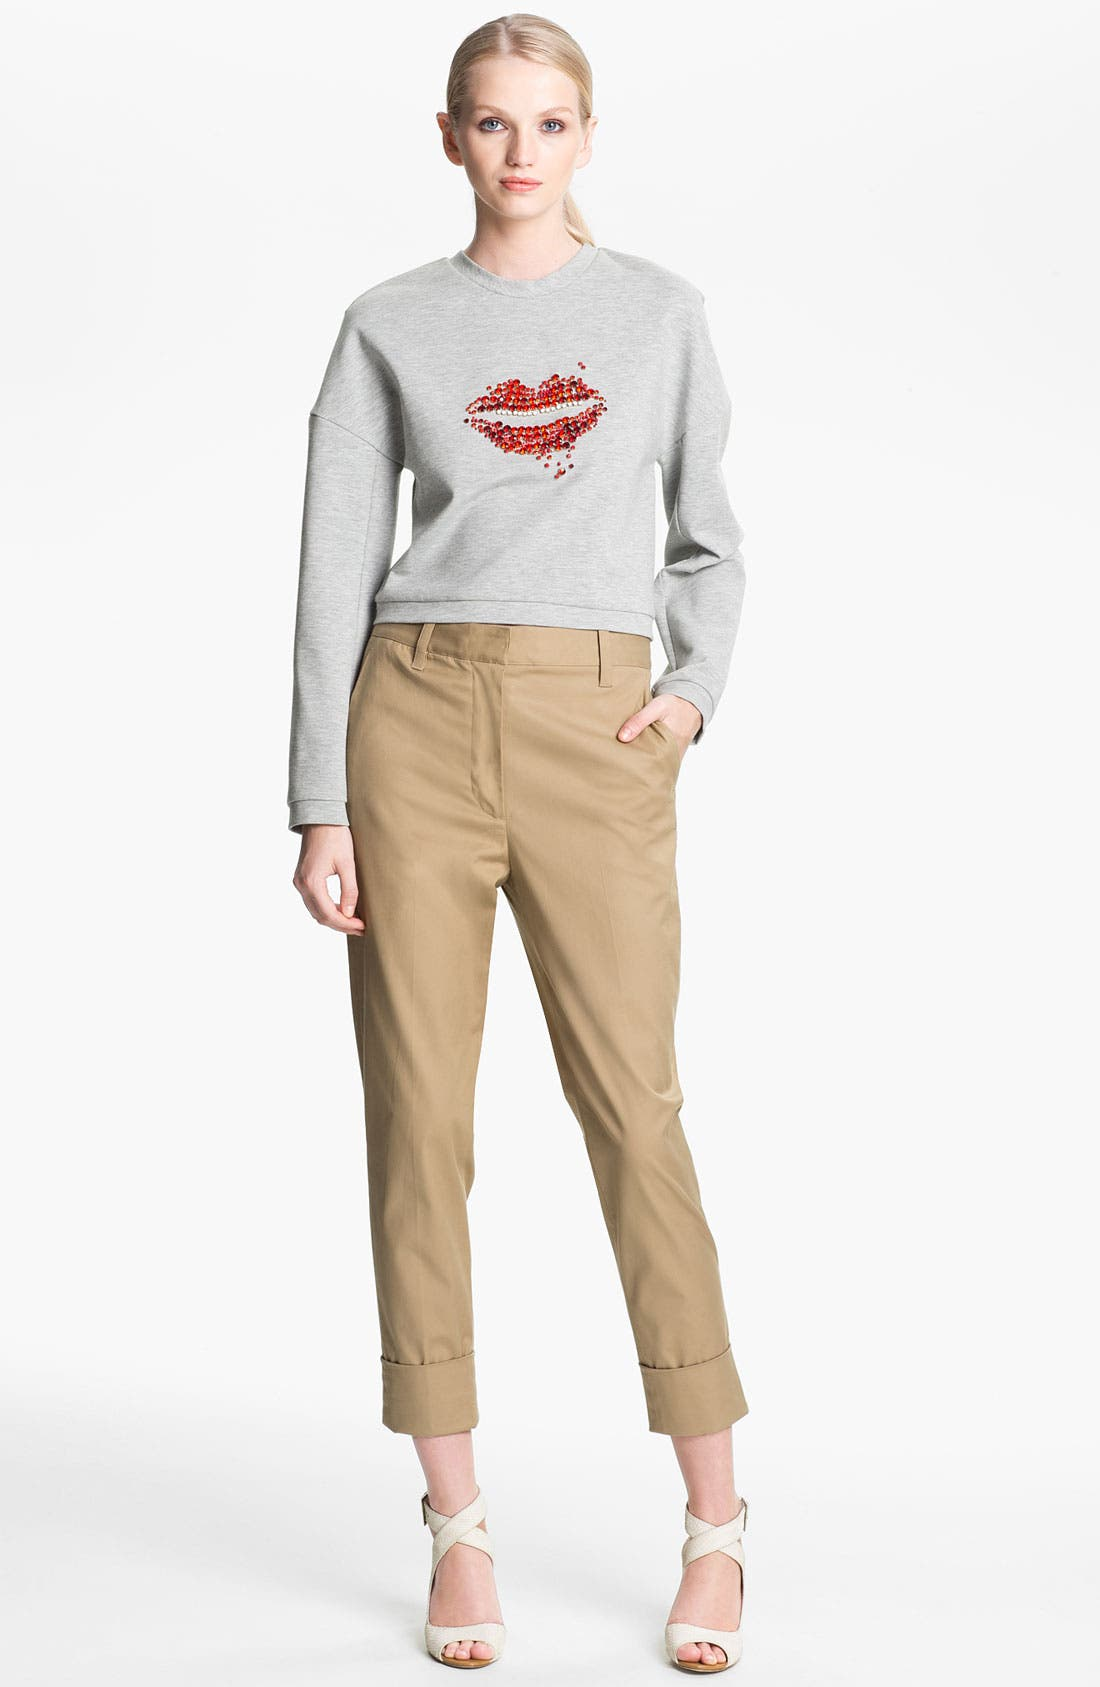 Main Image - 3.1 Phillip Lim Bead Embellished Crop Sweatshirt